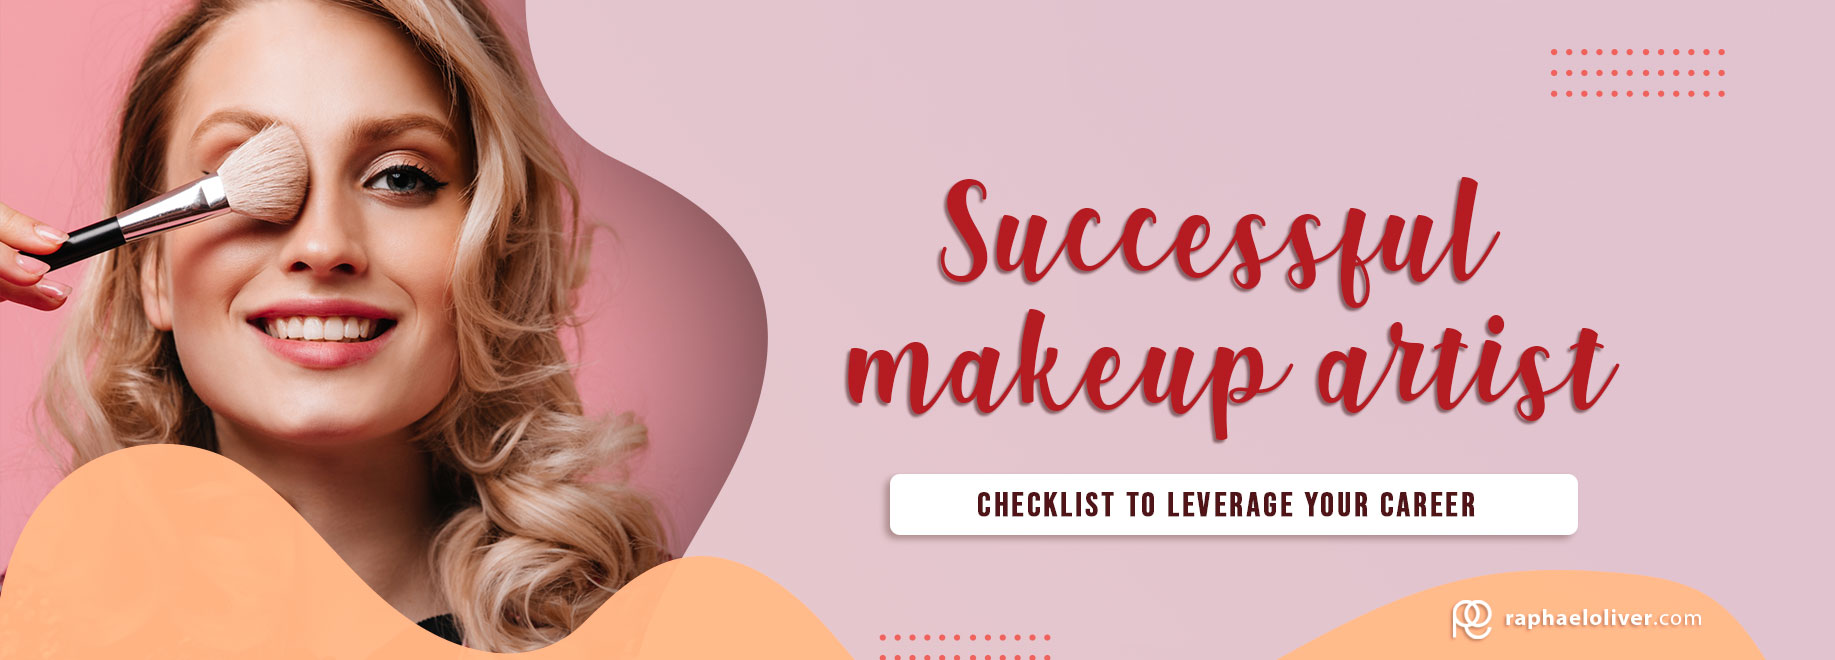 7 Tips to become a successful makeup artist + checklist to boost your career